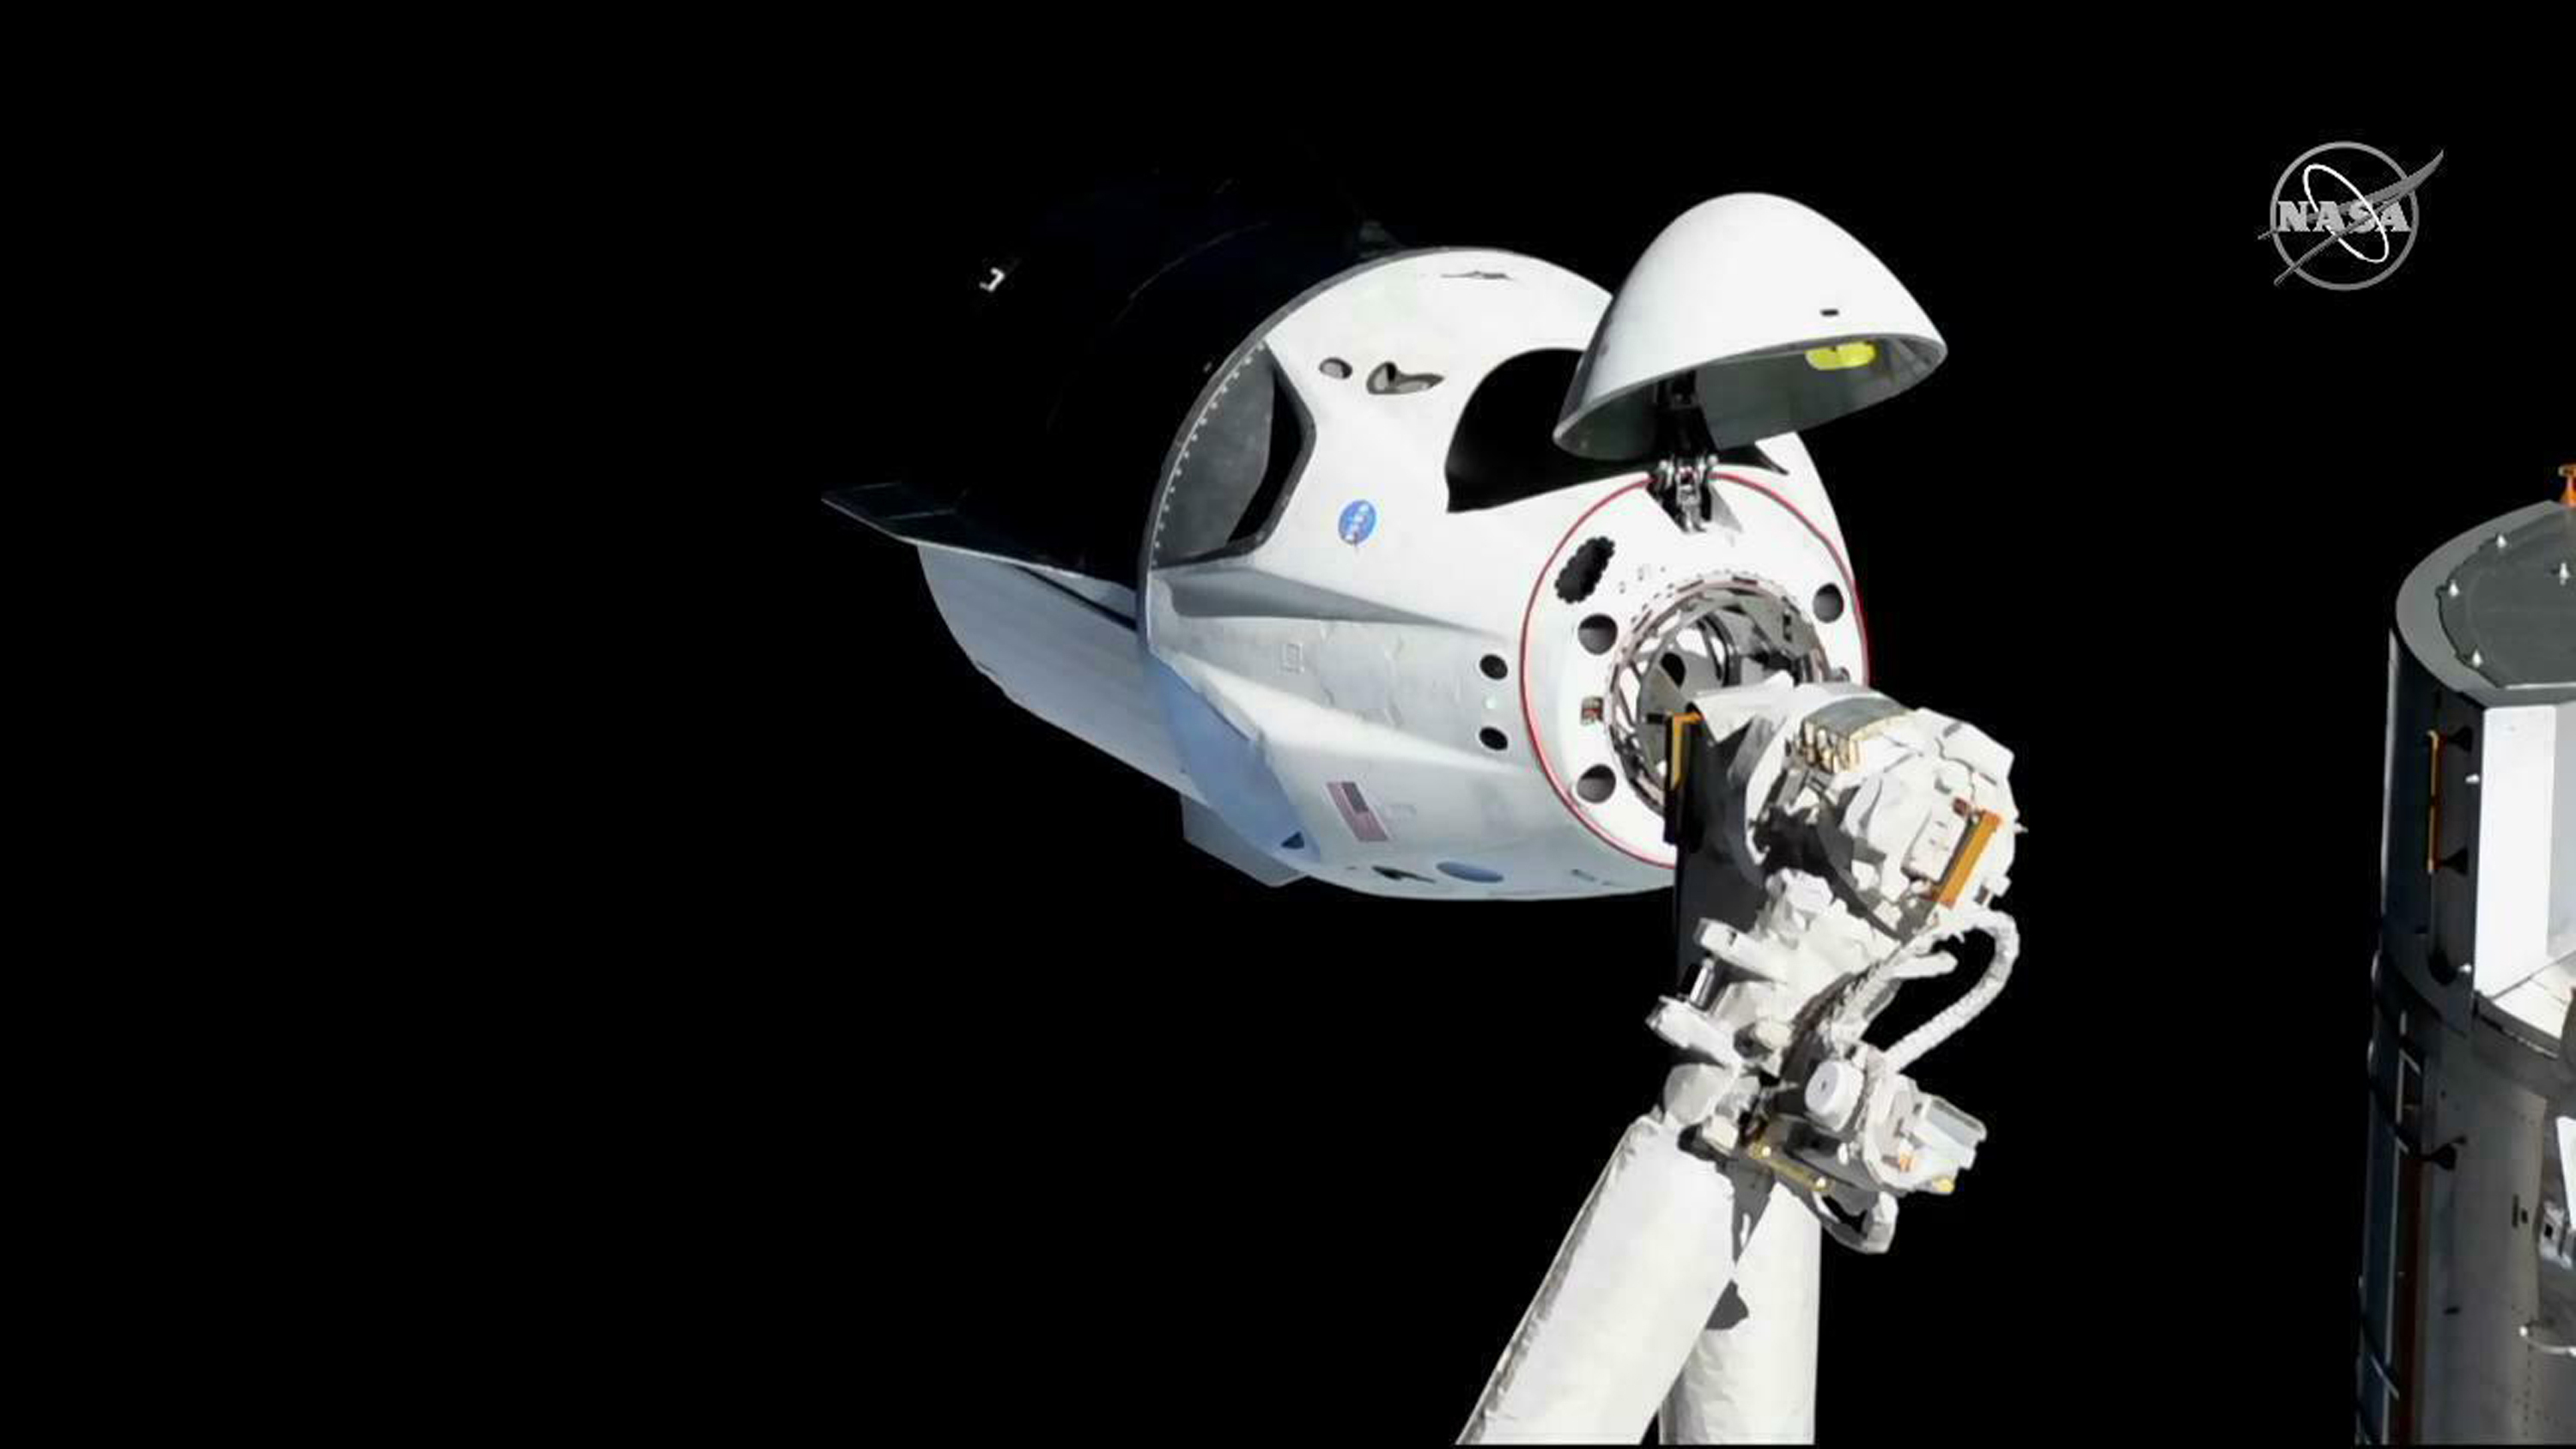 FILE - The SpaceX Crew Dragon capsule is pictured, March 3, 2019, about 20 meters (66 feet) from the International Space Station's Harmony module. SpaceX said May 2, 2019, that their Dragon capsule for astronauts was destroyed during a ground test, A...